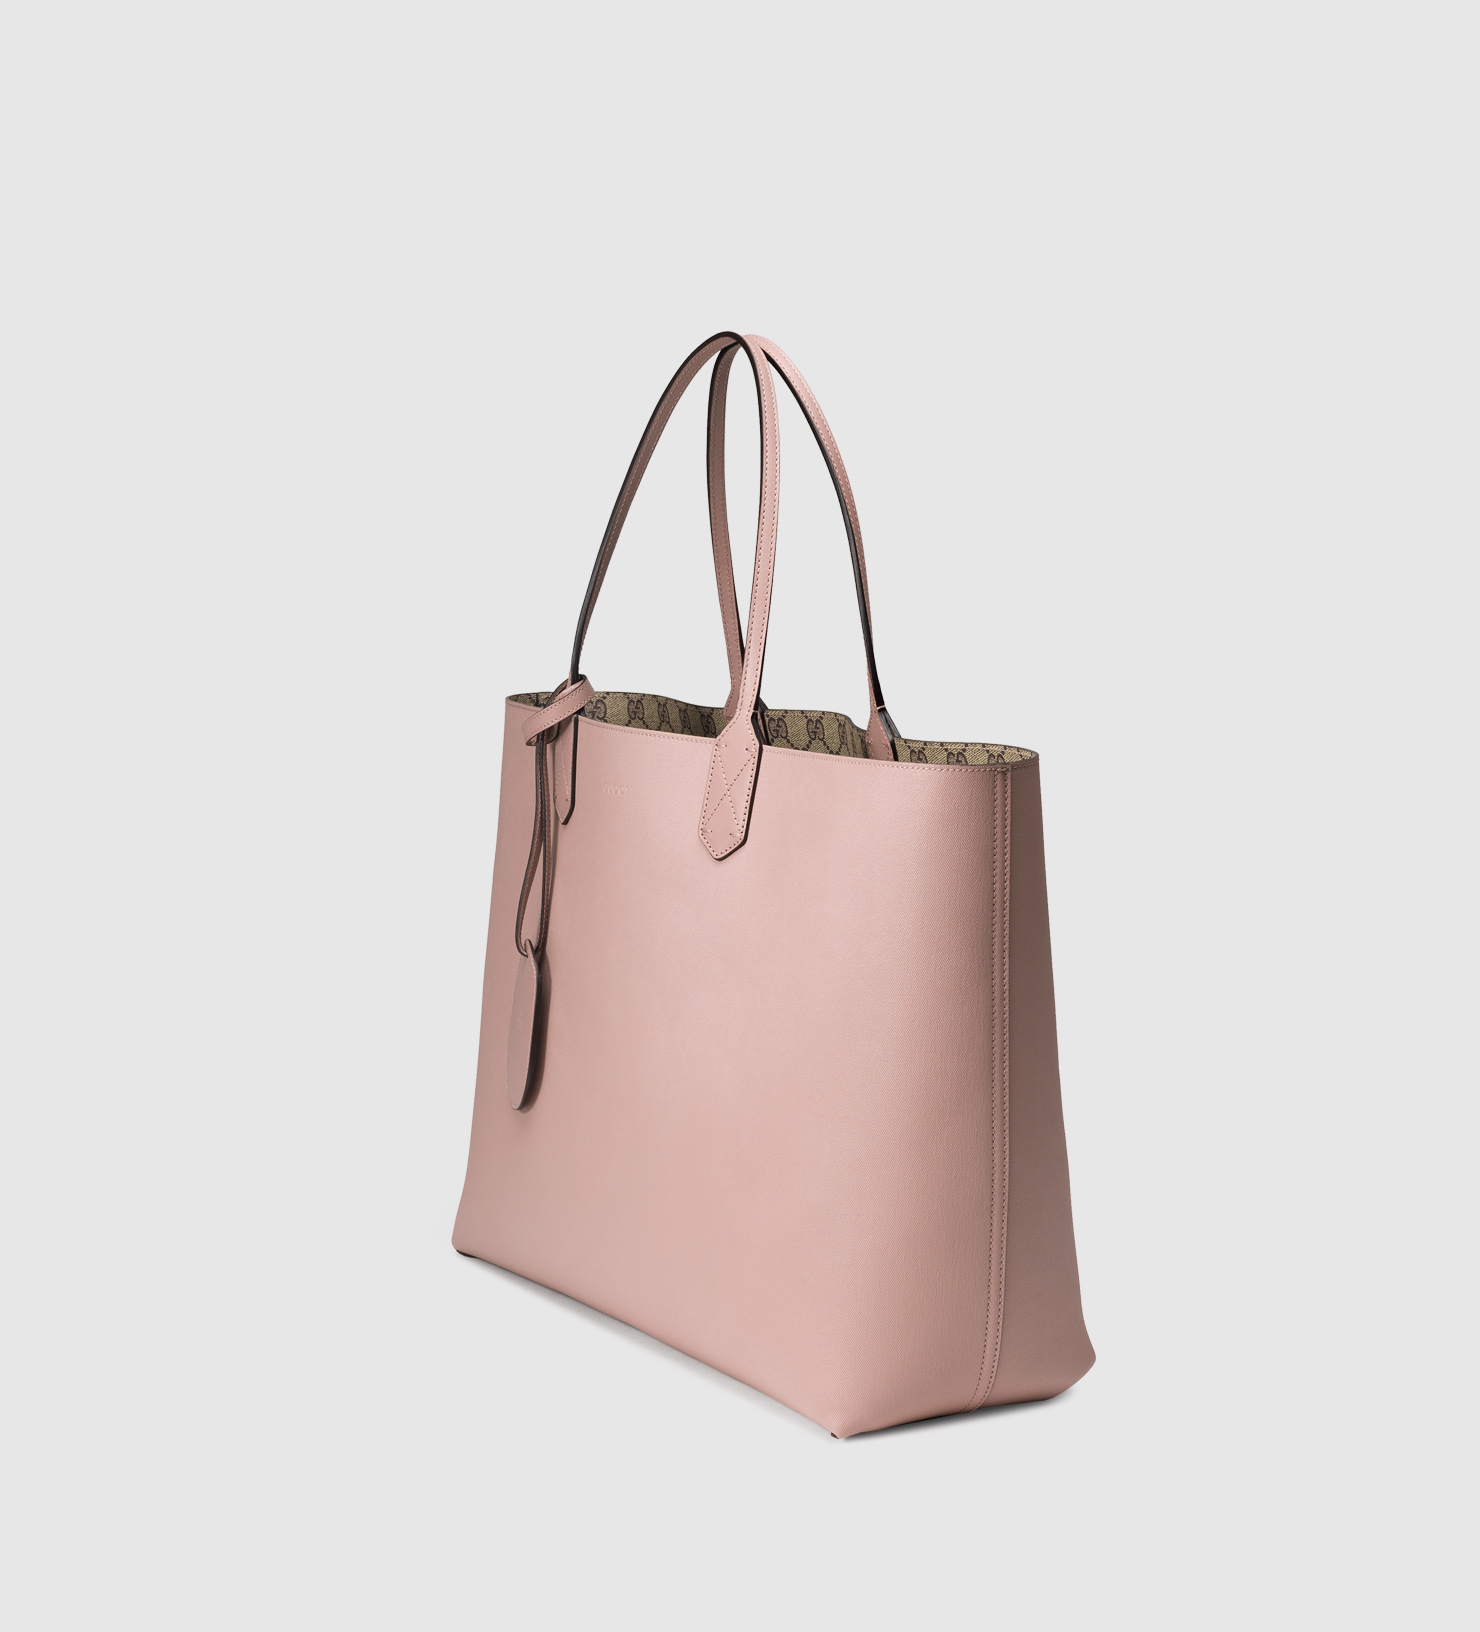 659af0c18b7a Gucci Tote Handbags Uk   Stanford Center for Opportunity Policy in ...